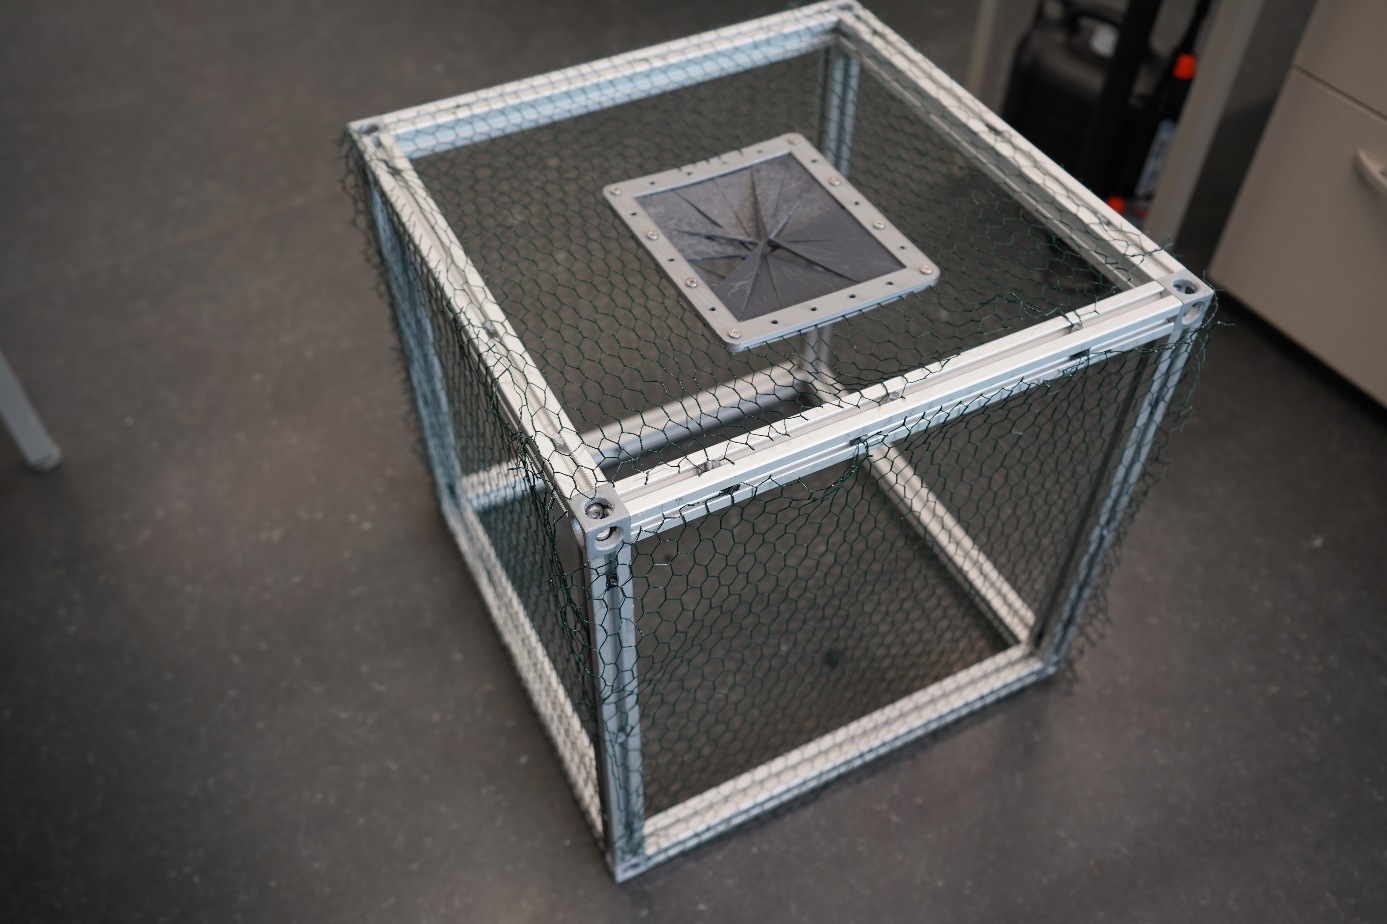 Lateral view of the basket prototype